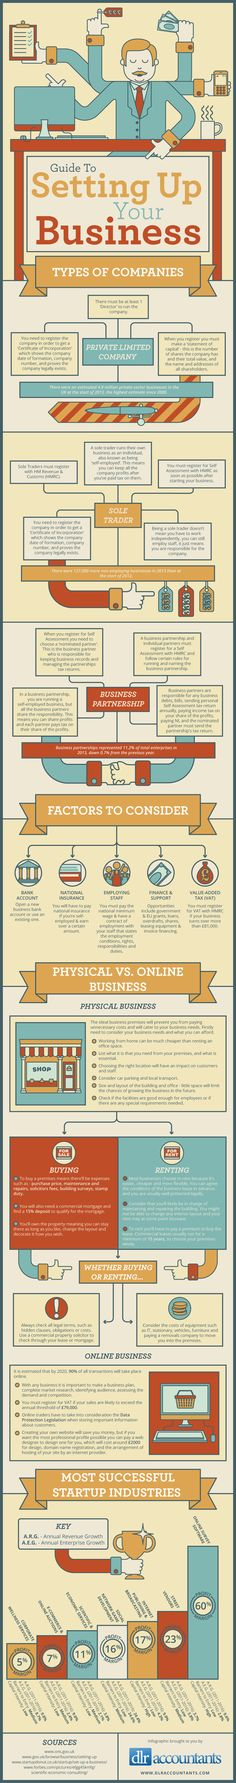 Guide To Setting Up Your Business #infographic #Business #Startup